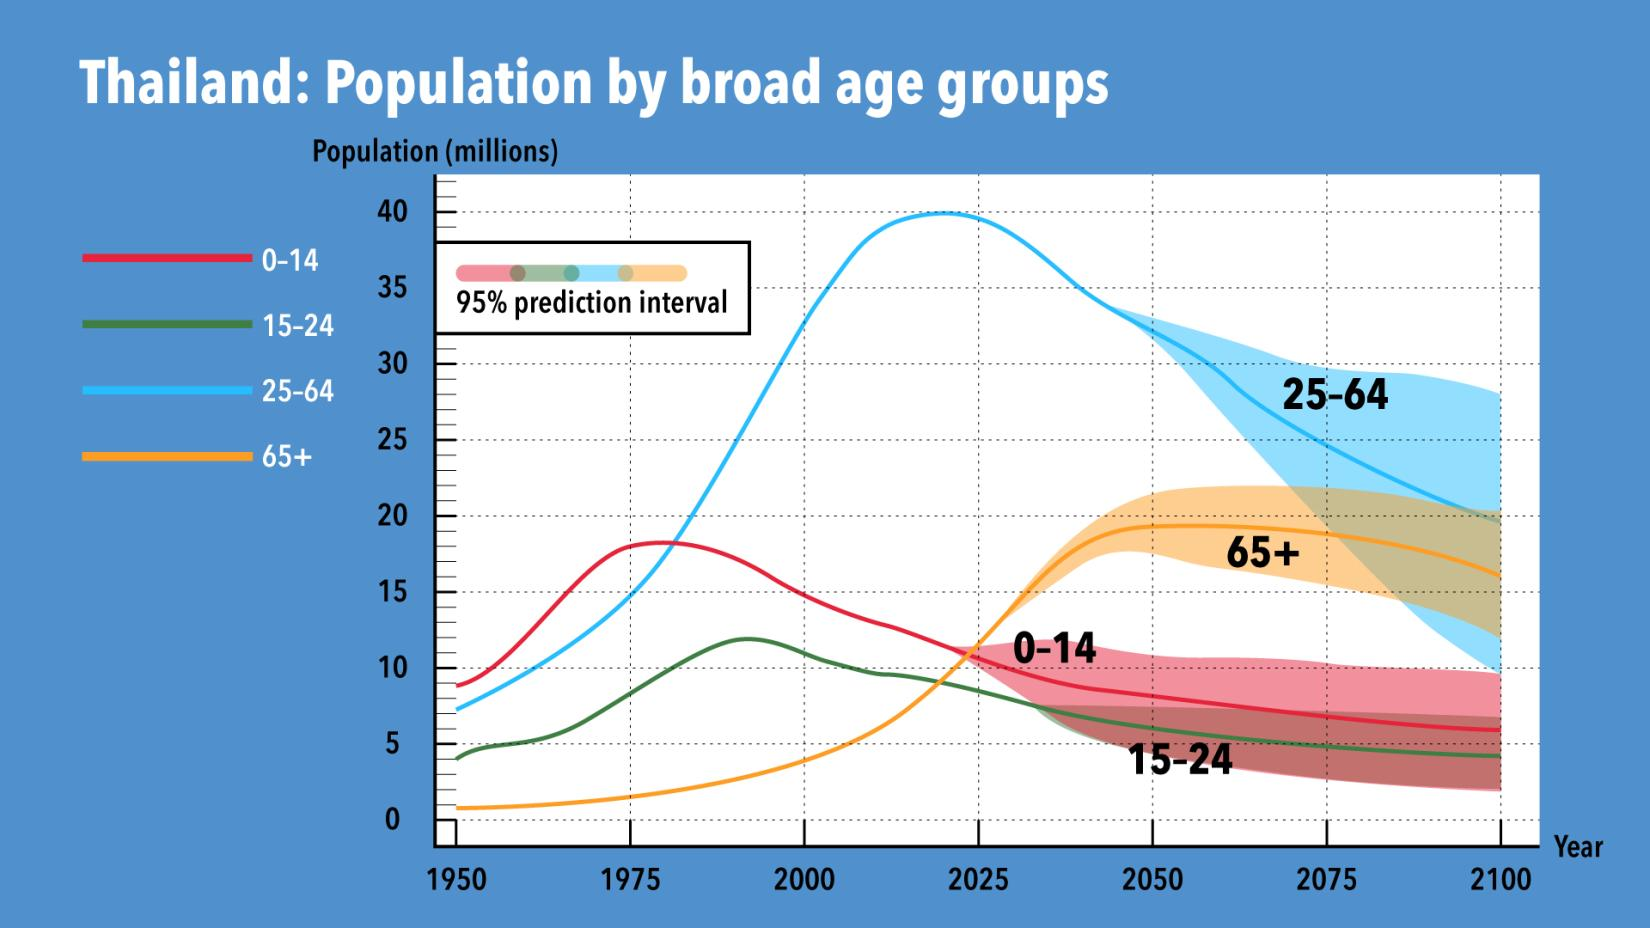 Proportion of working age population will be gradually decline by 2025